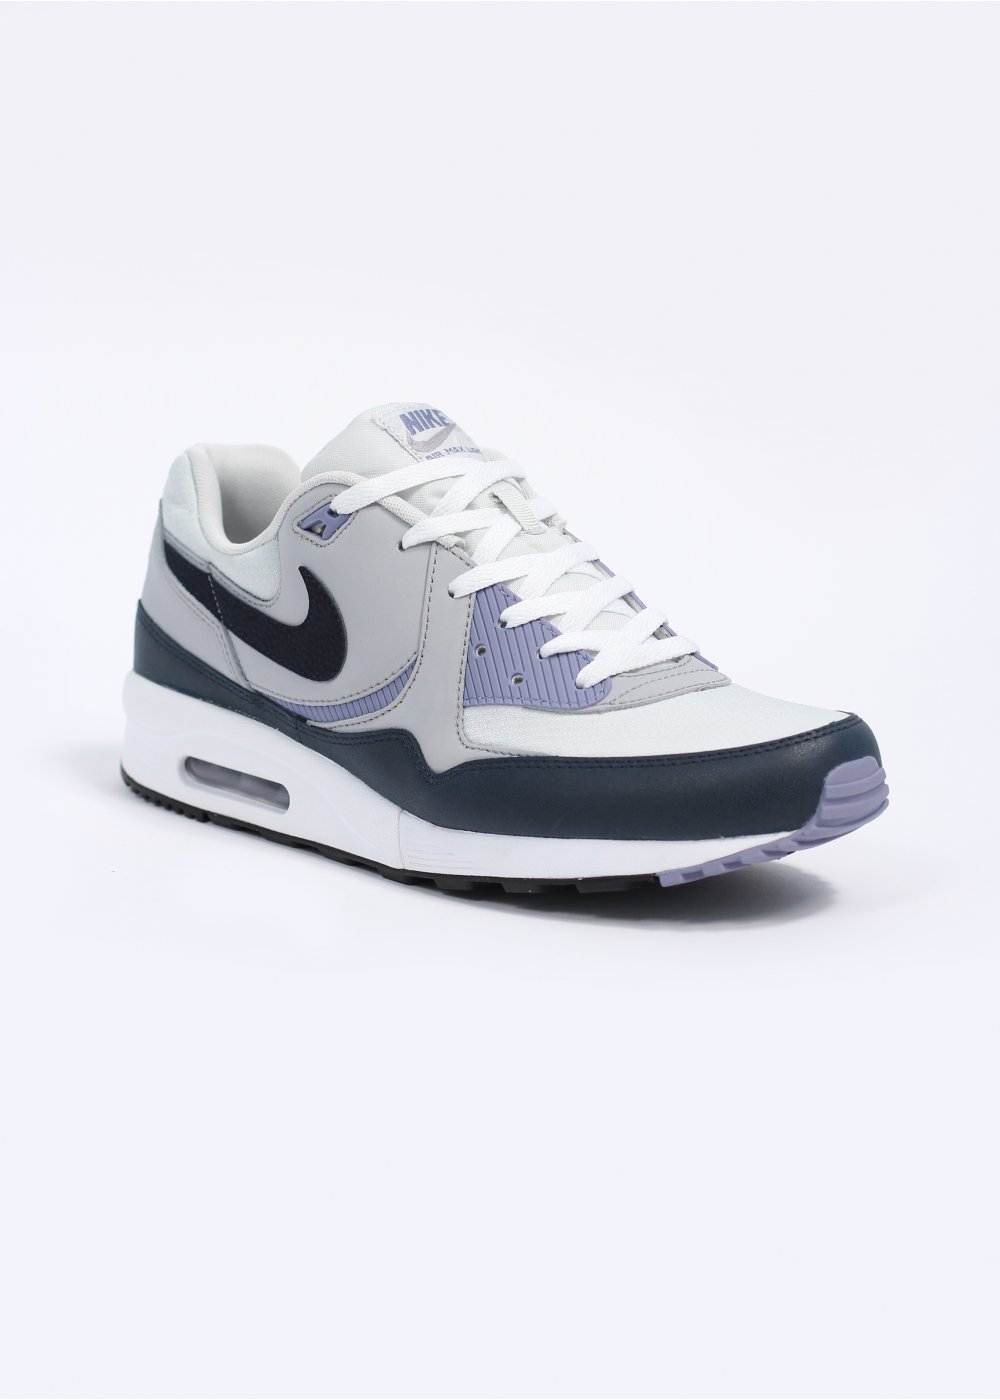 nike air max light essential white. Black Bedroom Furniture Sets. Home Design Ideas